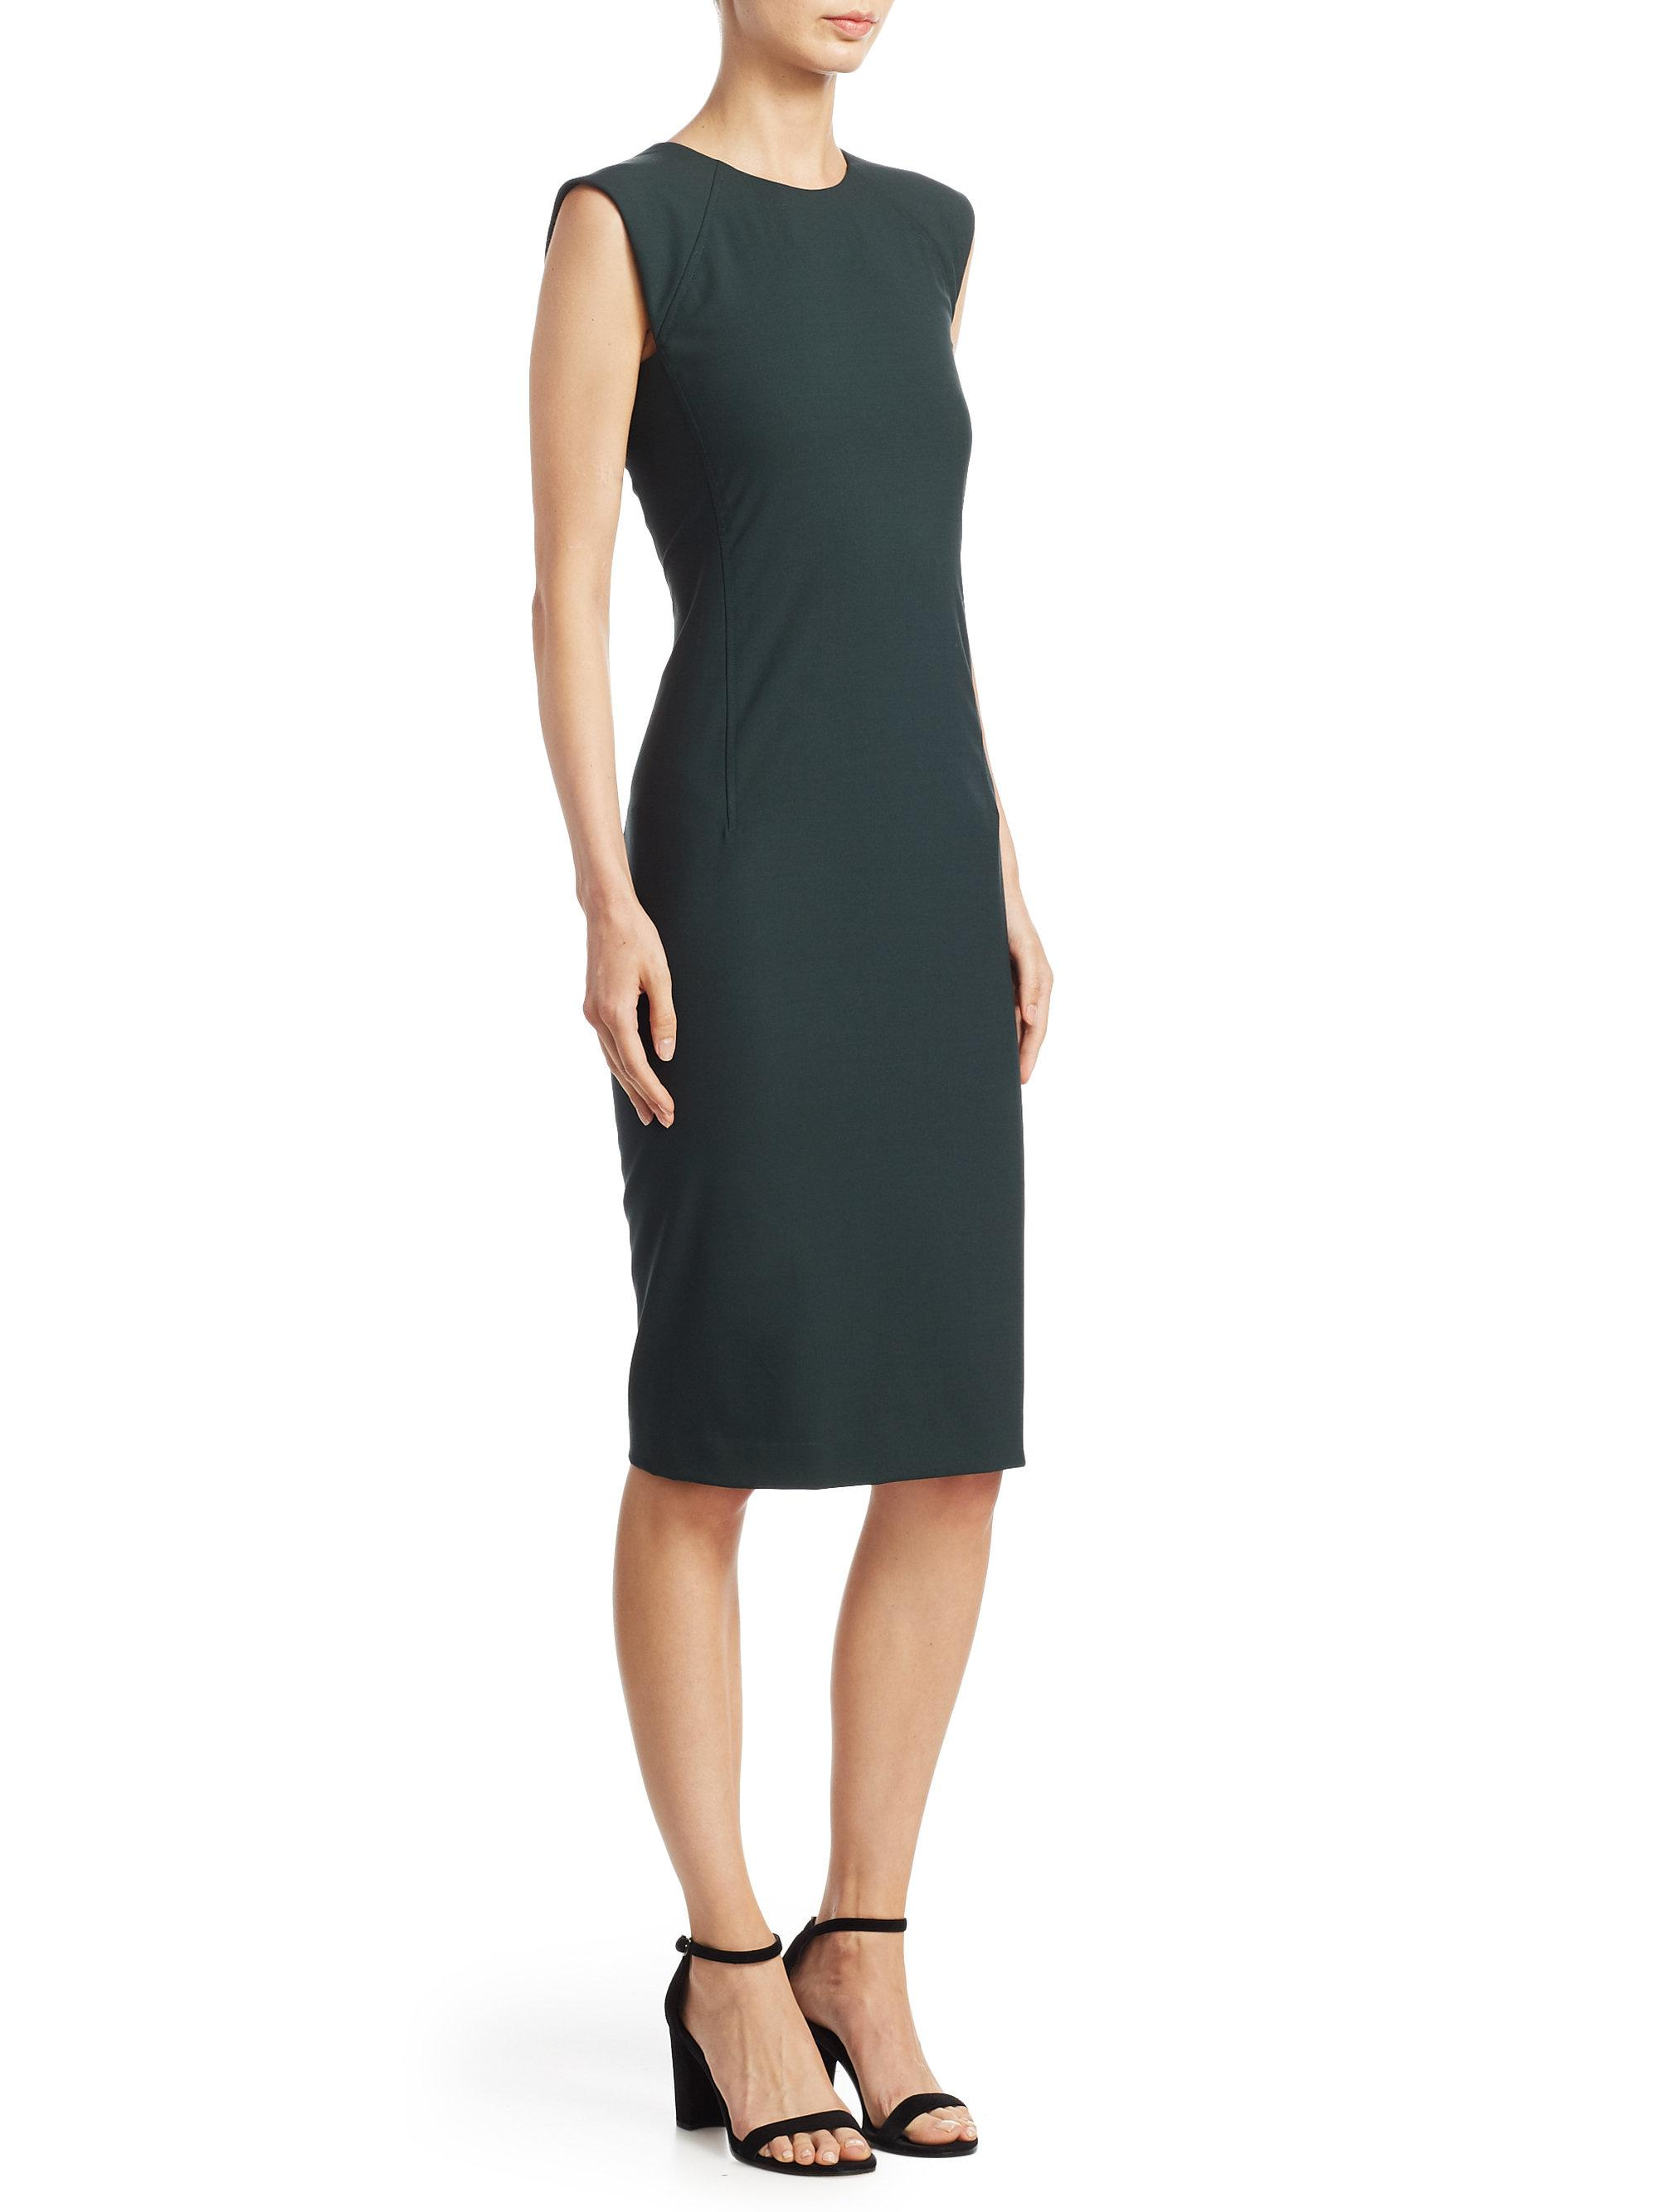 Lyst theory power sheath dress in green for Saks fifth avenue wedding guest dresses